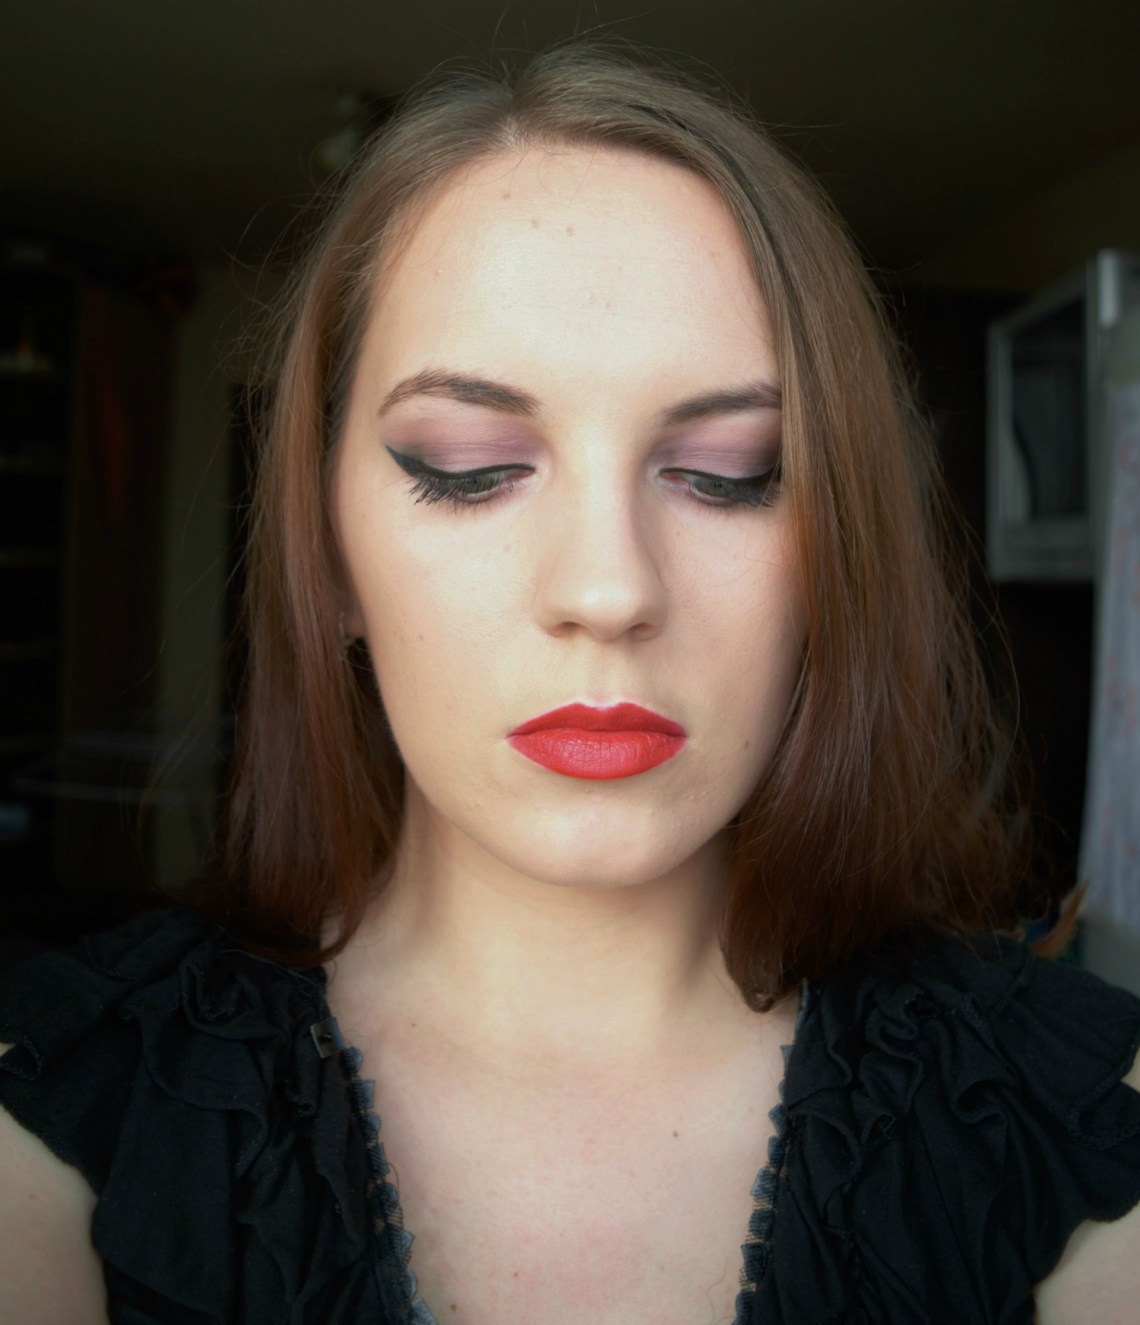 purple eyeshadow, cat-eyes and red lips - make-up look by Bloggerissa (4)